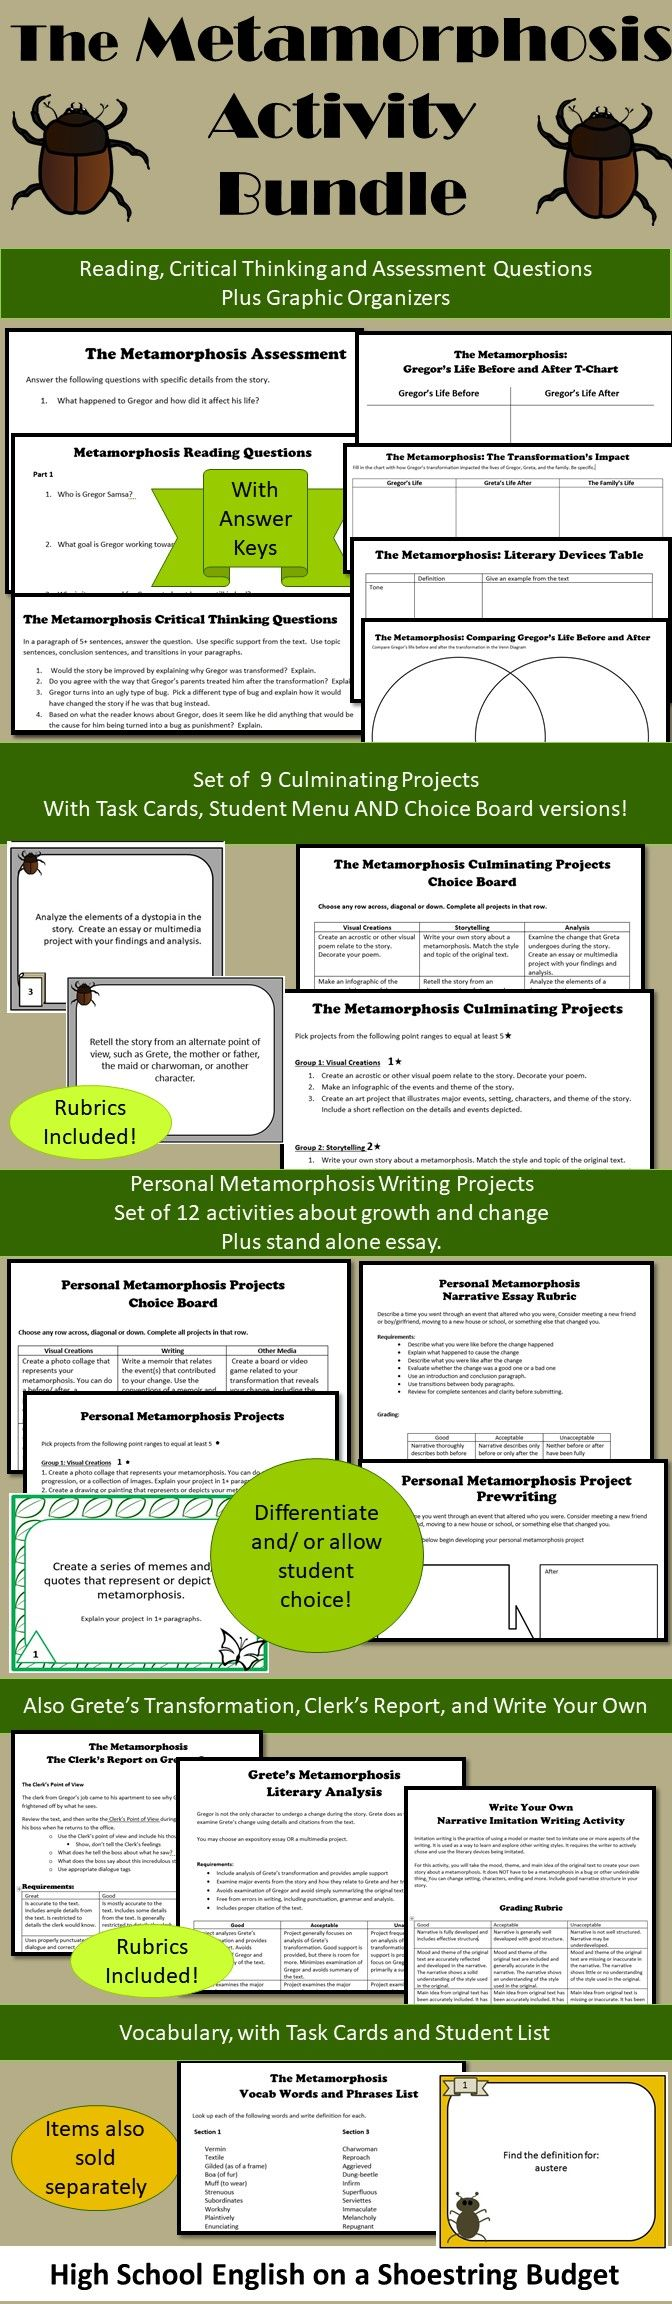 the metamorphosis activity bundle franz kafka pdf graphic money saving bundle of activities for teaching the metamorphosis by franz kafka